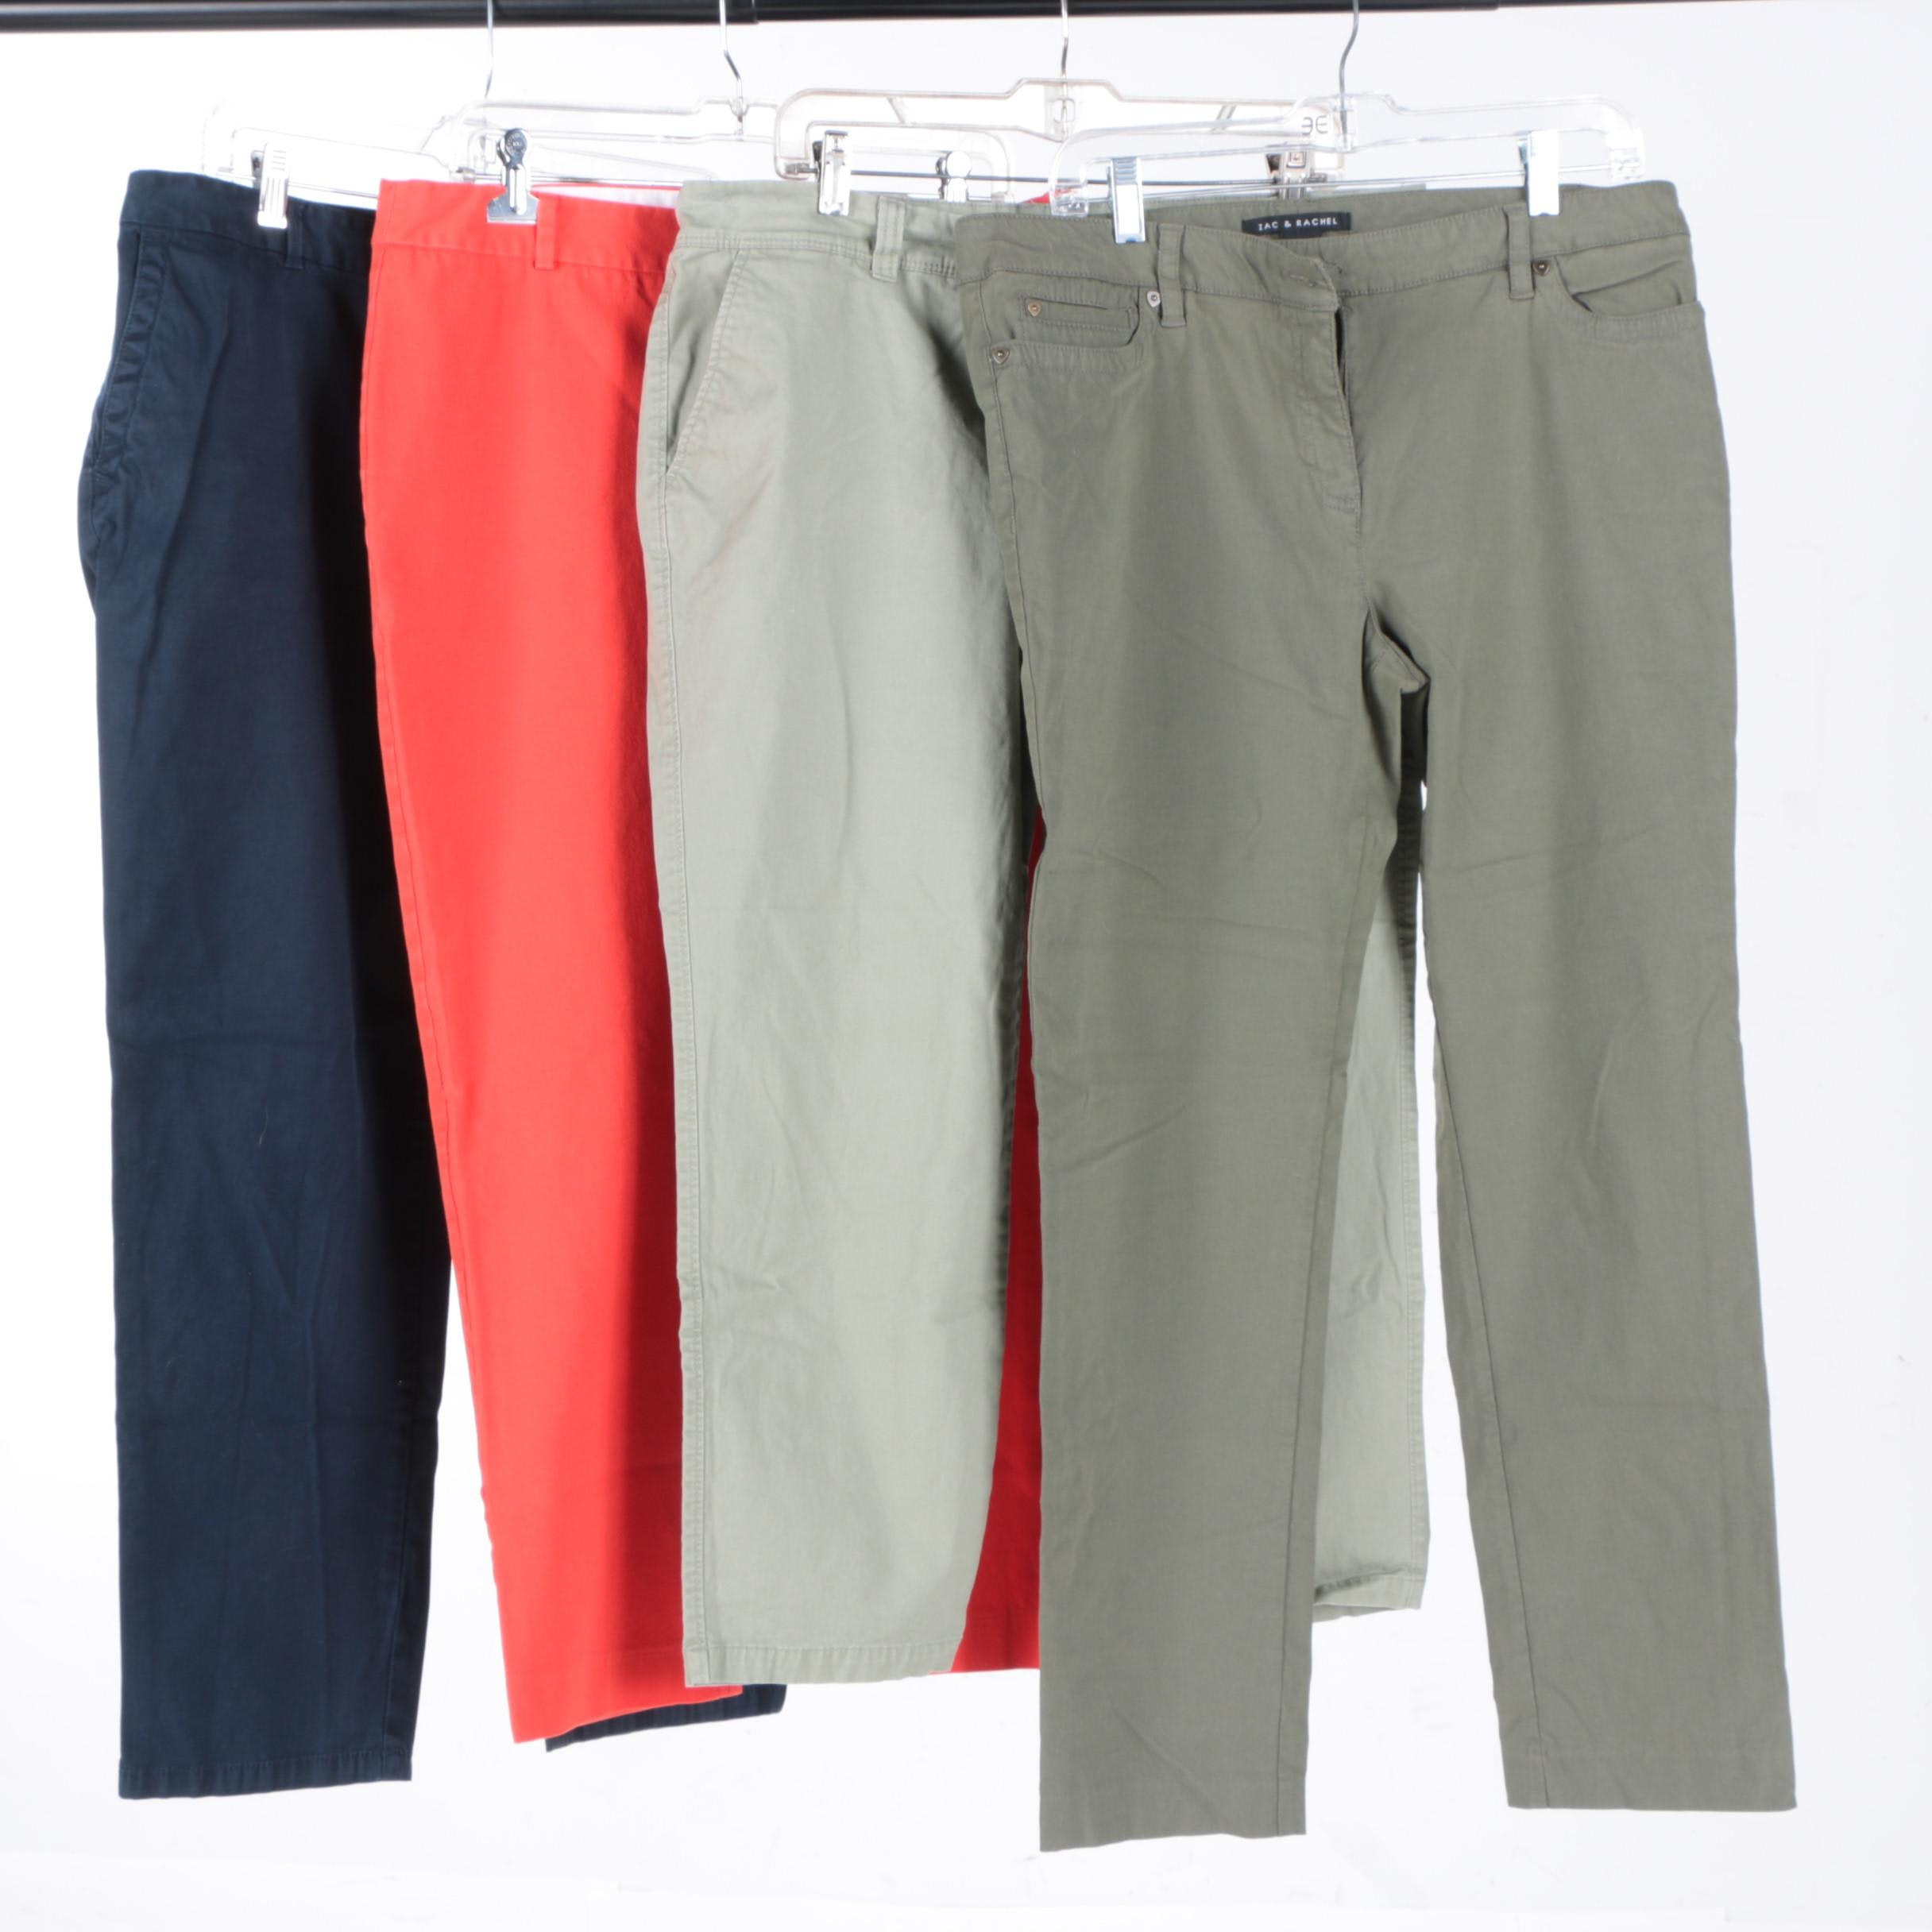 Women's Pants Including Talbots